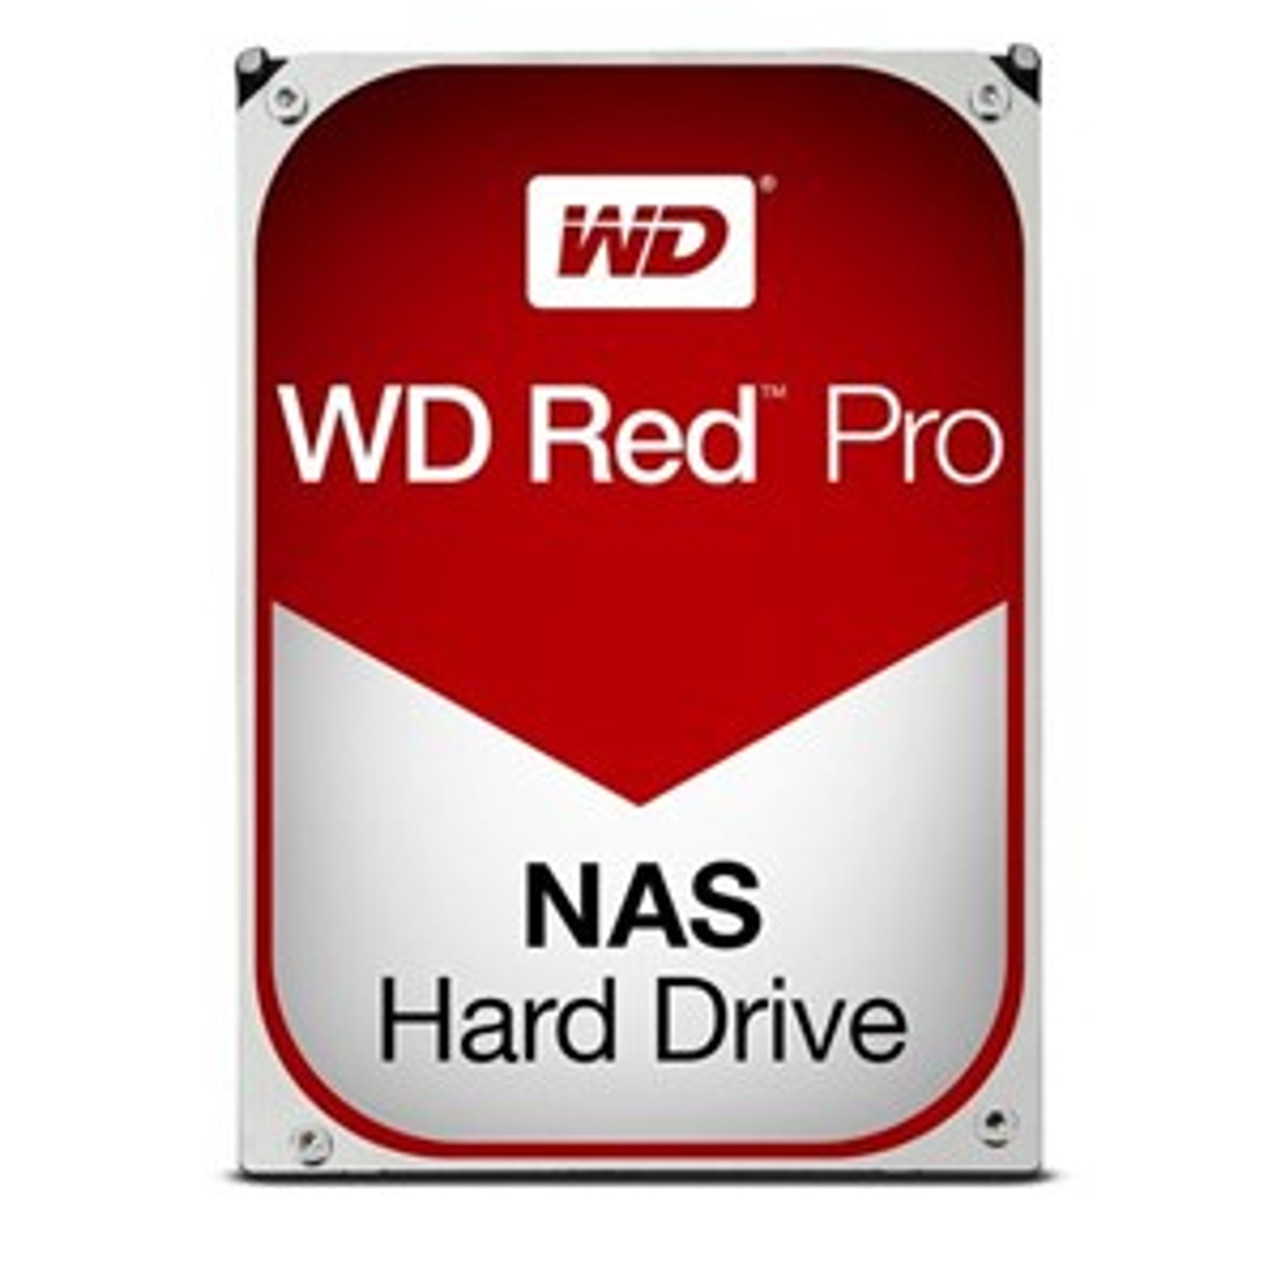 Product image for Western Digital WD Red Pro 10TB NAS Hard Drive | CX Computer Superstore